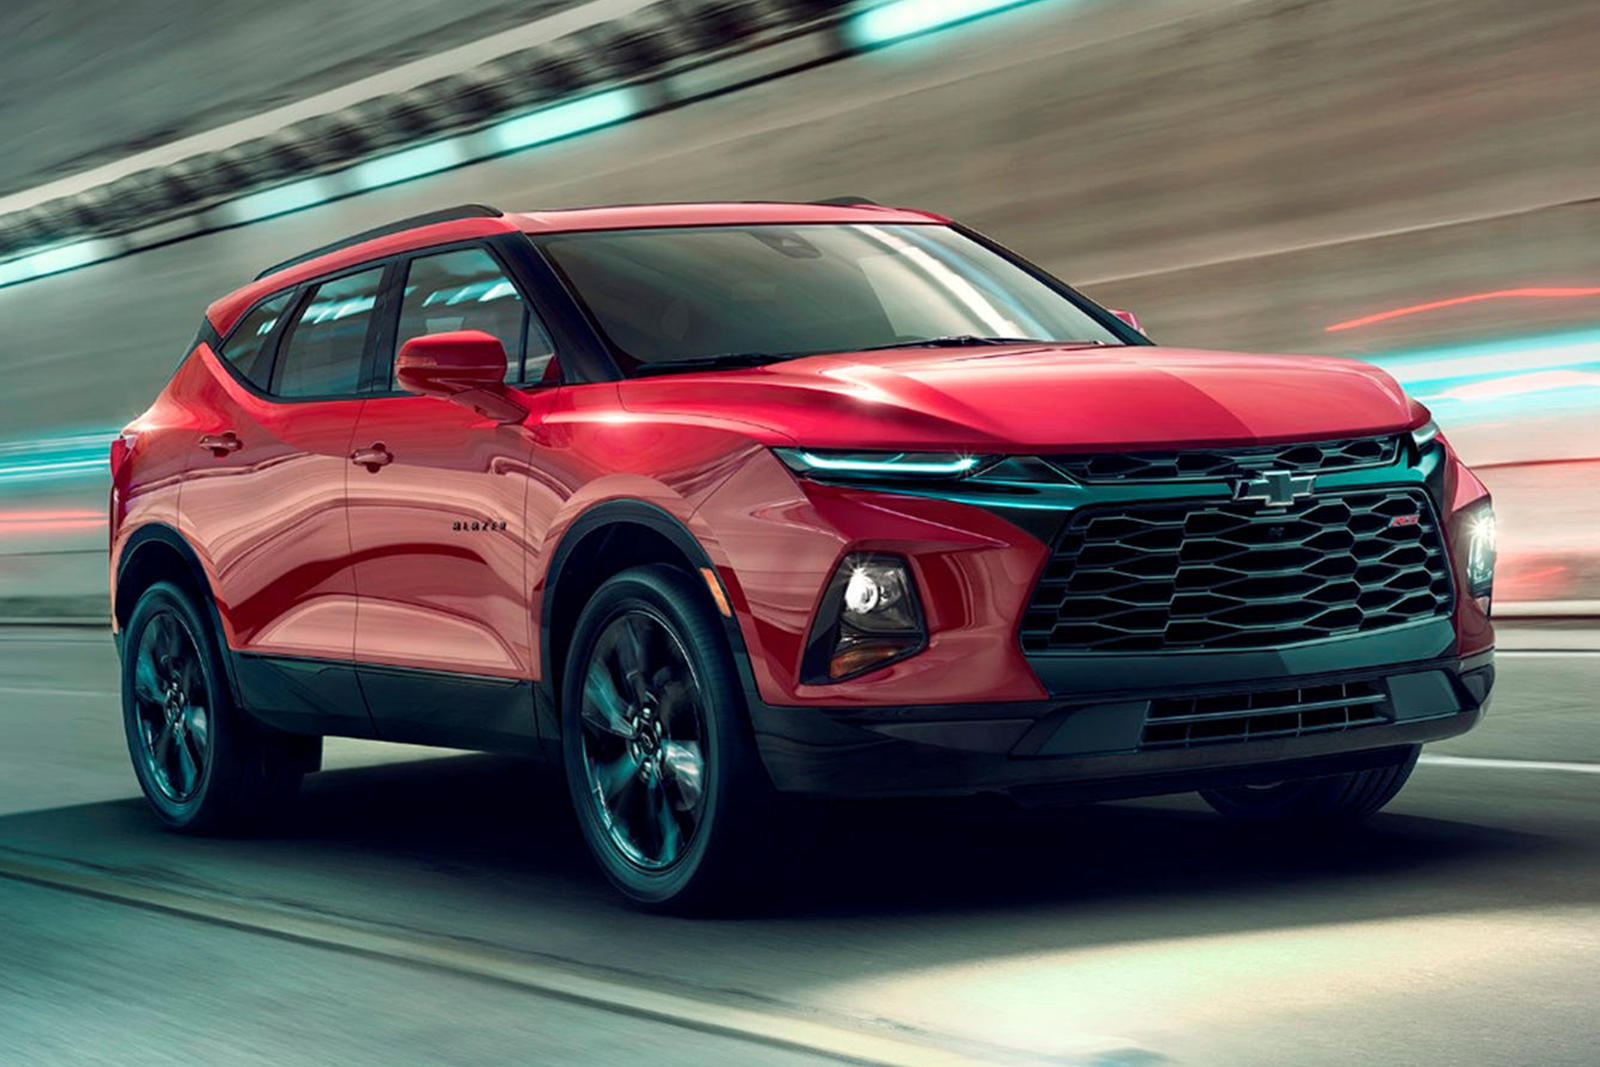 2020 Chevrolet Blazer Receiving A Slick Styling Upgrade ...